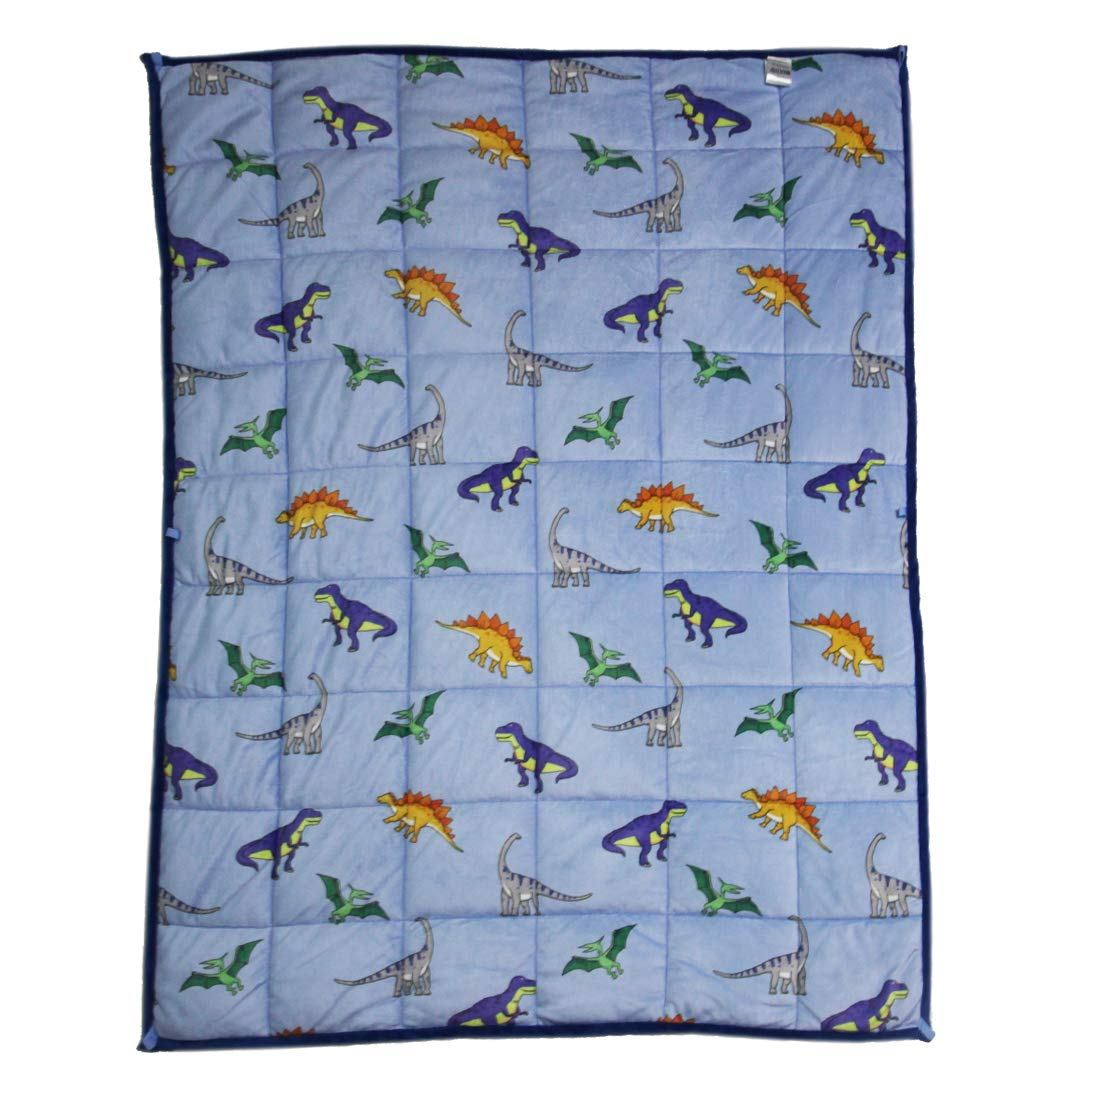 MAXTID Weighted Blanket for Toddler 3lb Blue Printed Dinosaur Weighted Sensory Blanket Gift for Baby Boys 36x48 by MAXTID